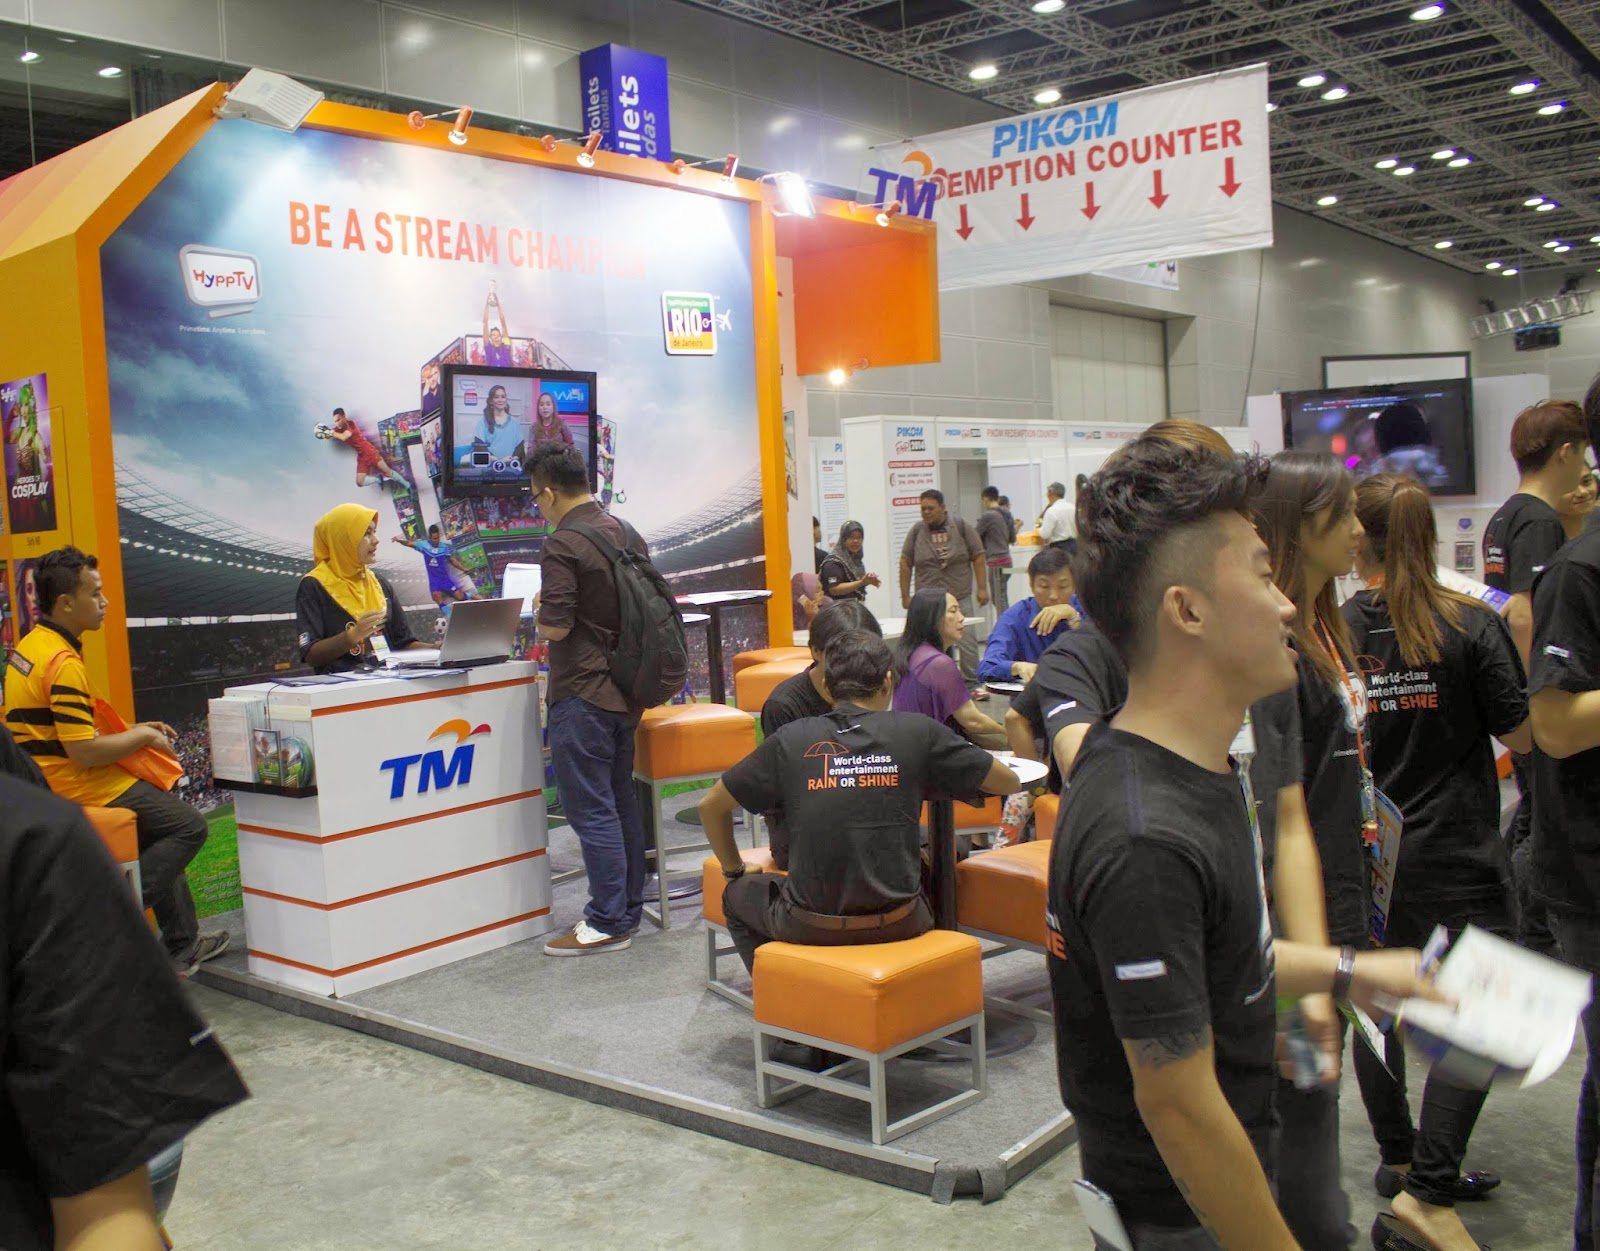 Coverage of PIKOM PC Fair 2014 @ Kuala Lumpur Convention Center 403